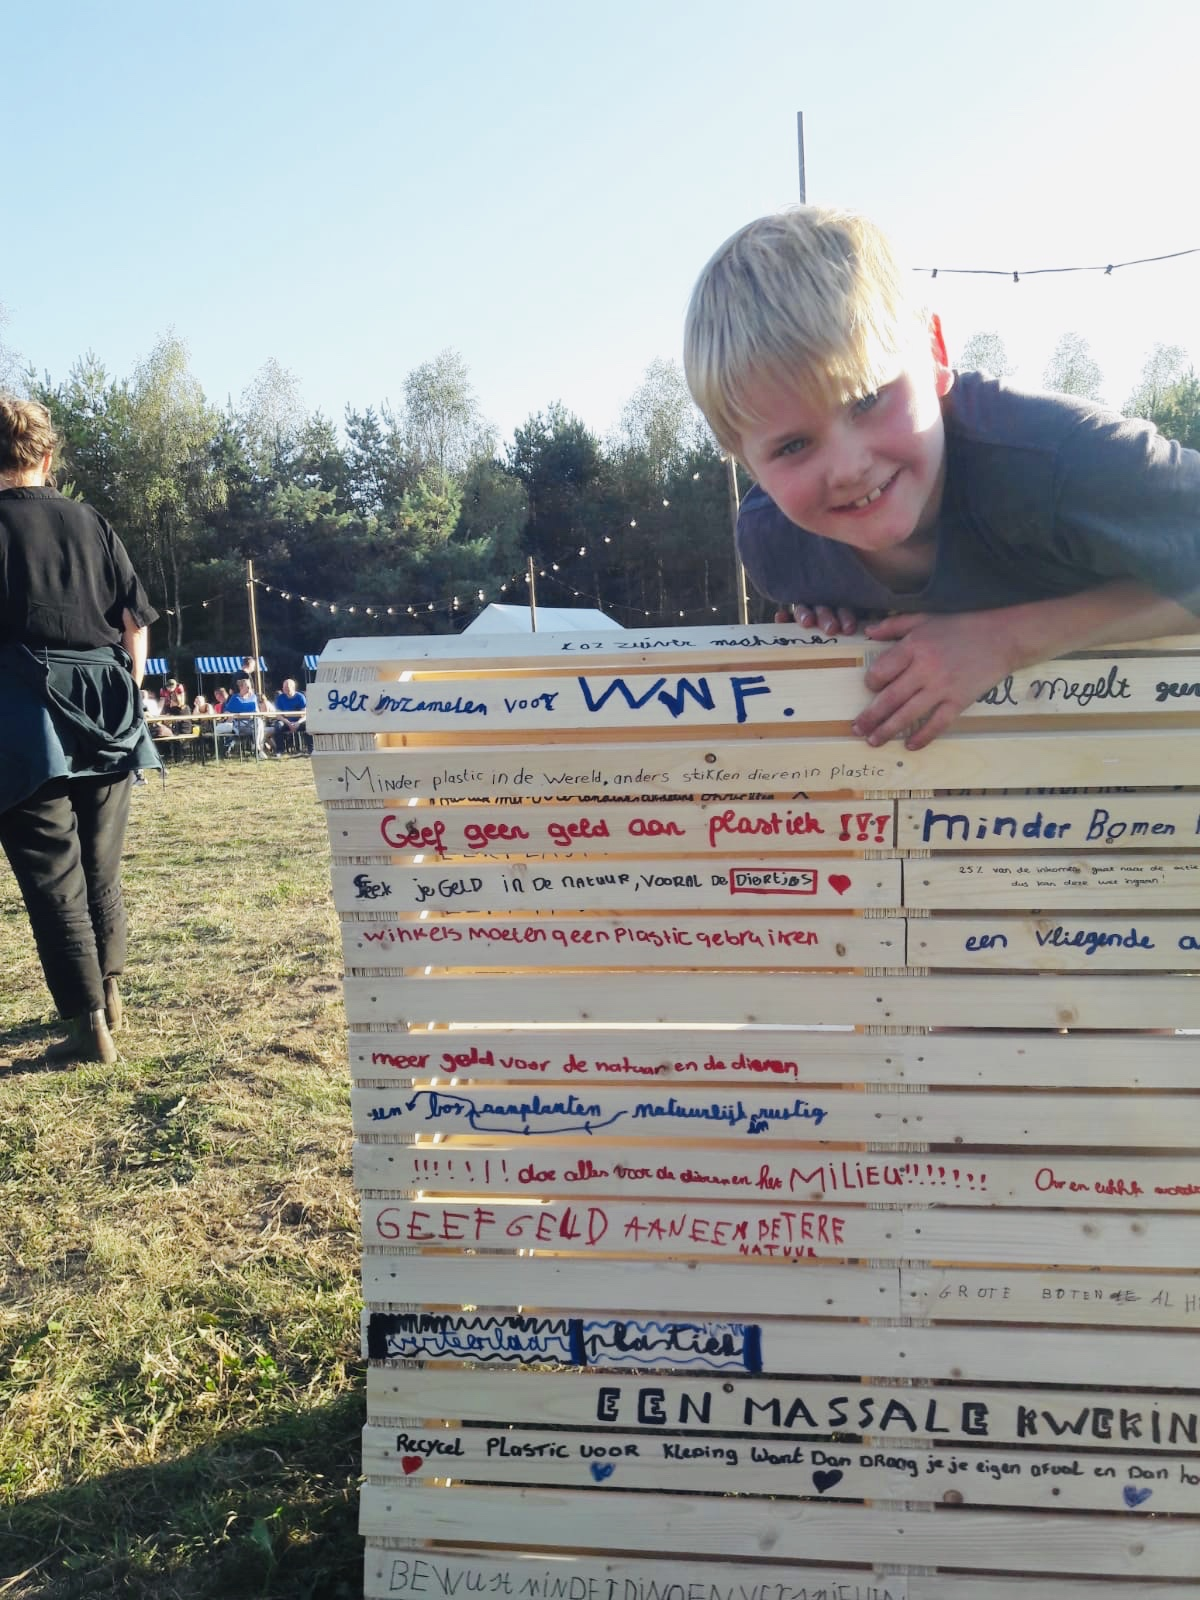 kids climate conference horst aan de maas wnf